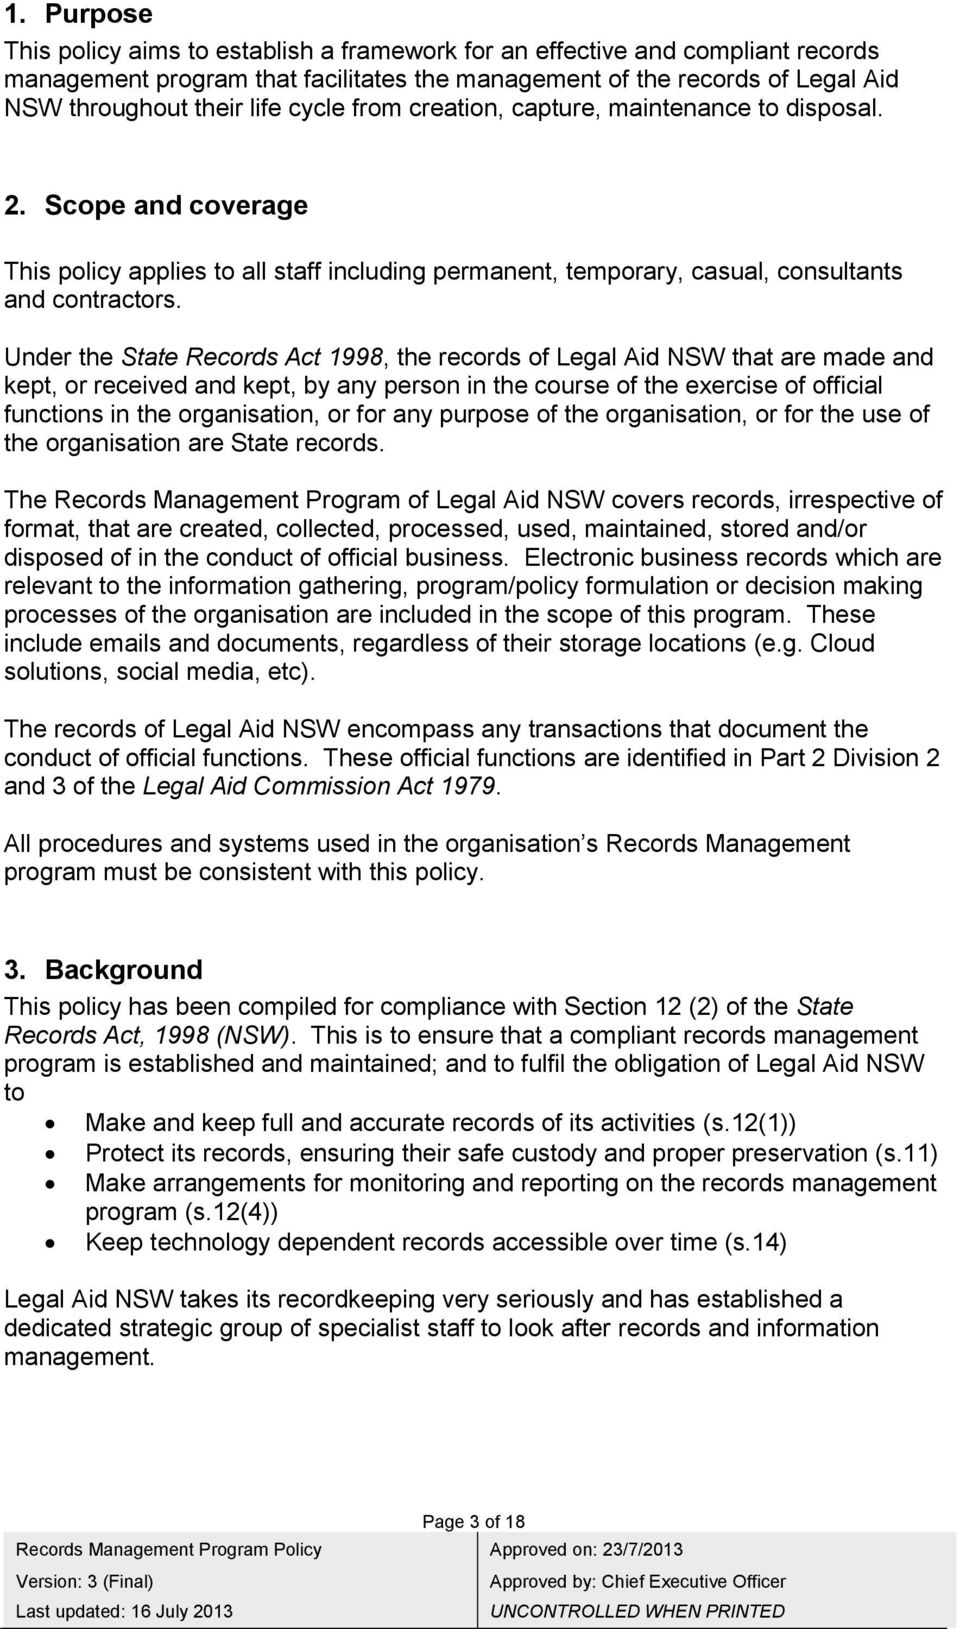 Under the State Records Act 1998, the records of Legal Aid NSW that are made and kept, or received and kept, by any person in the course of the exercise of official functions in the organisation, or